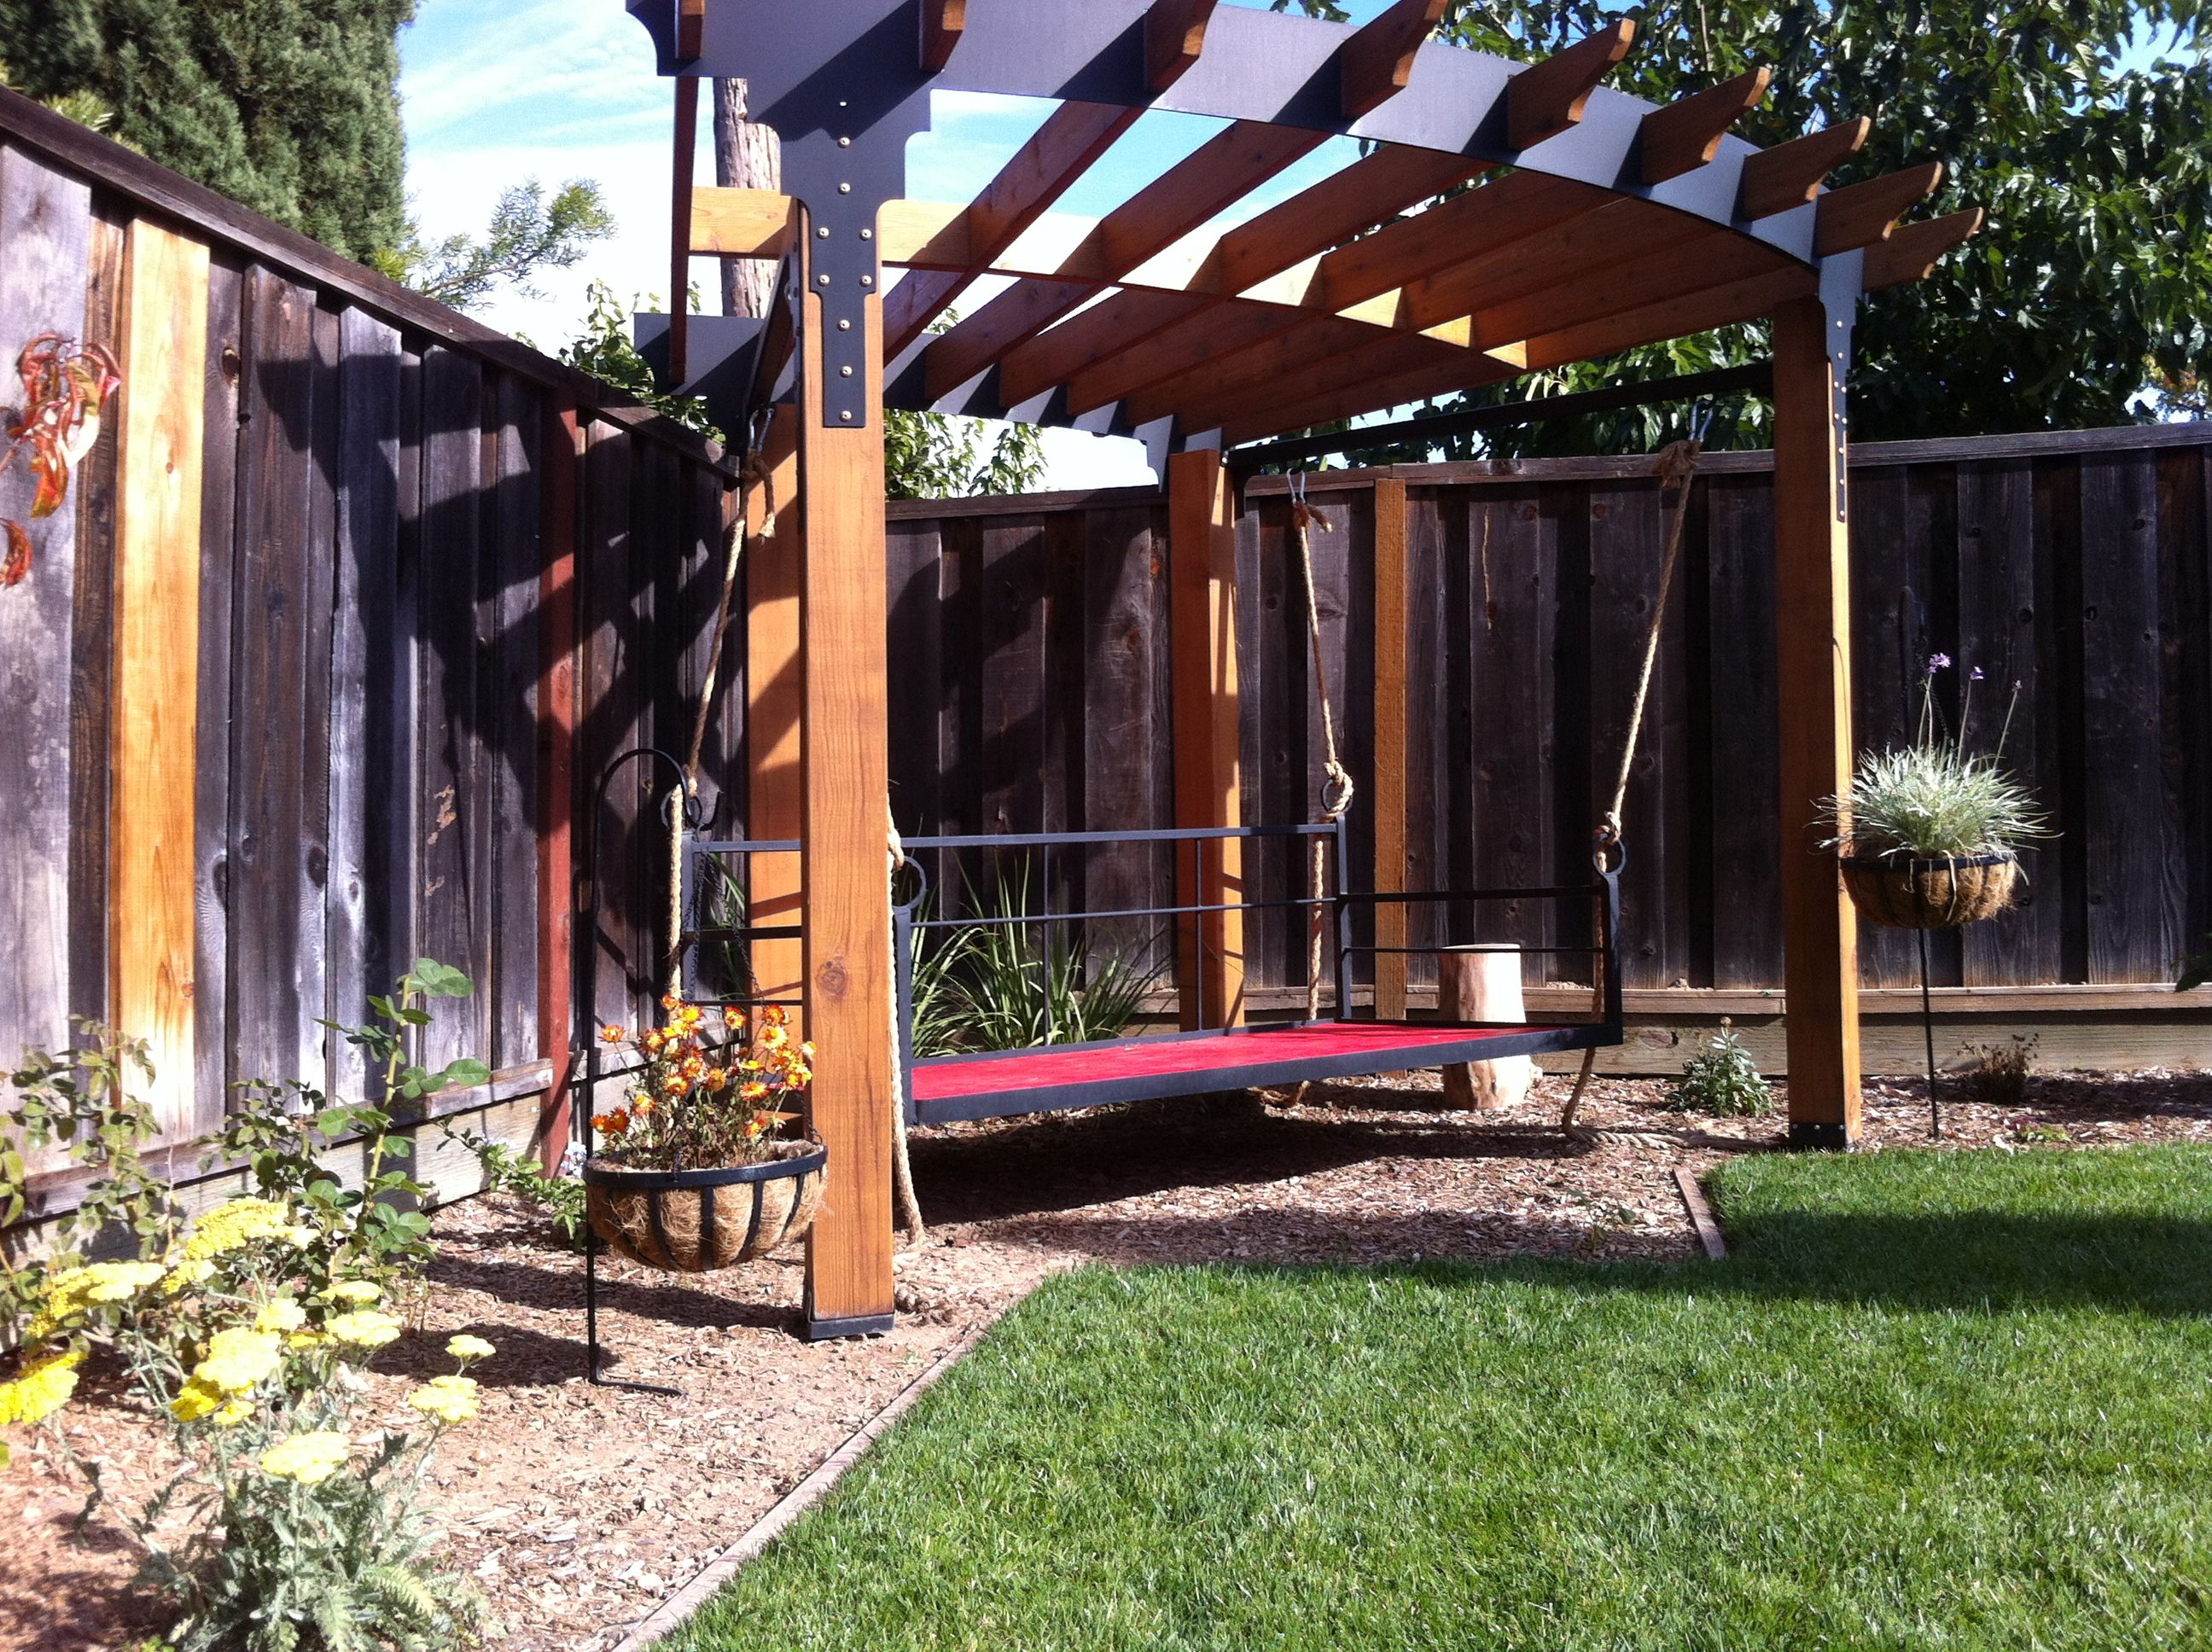 trapezoid gazebo pergola with a hanging day bed fits nicely in